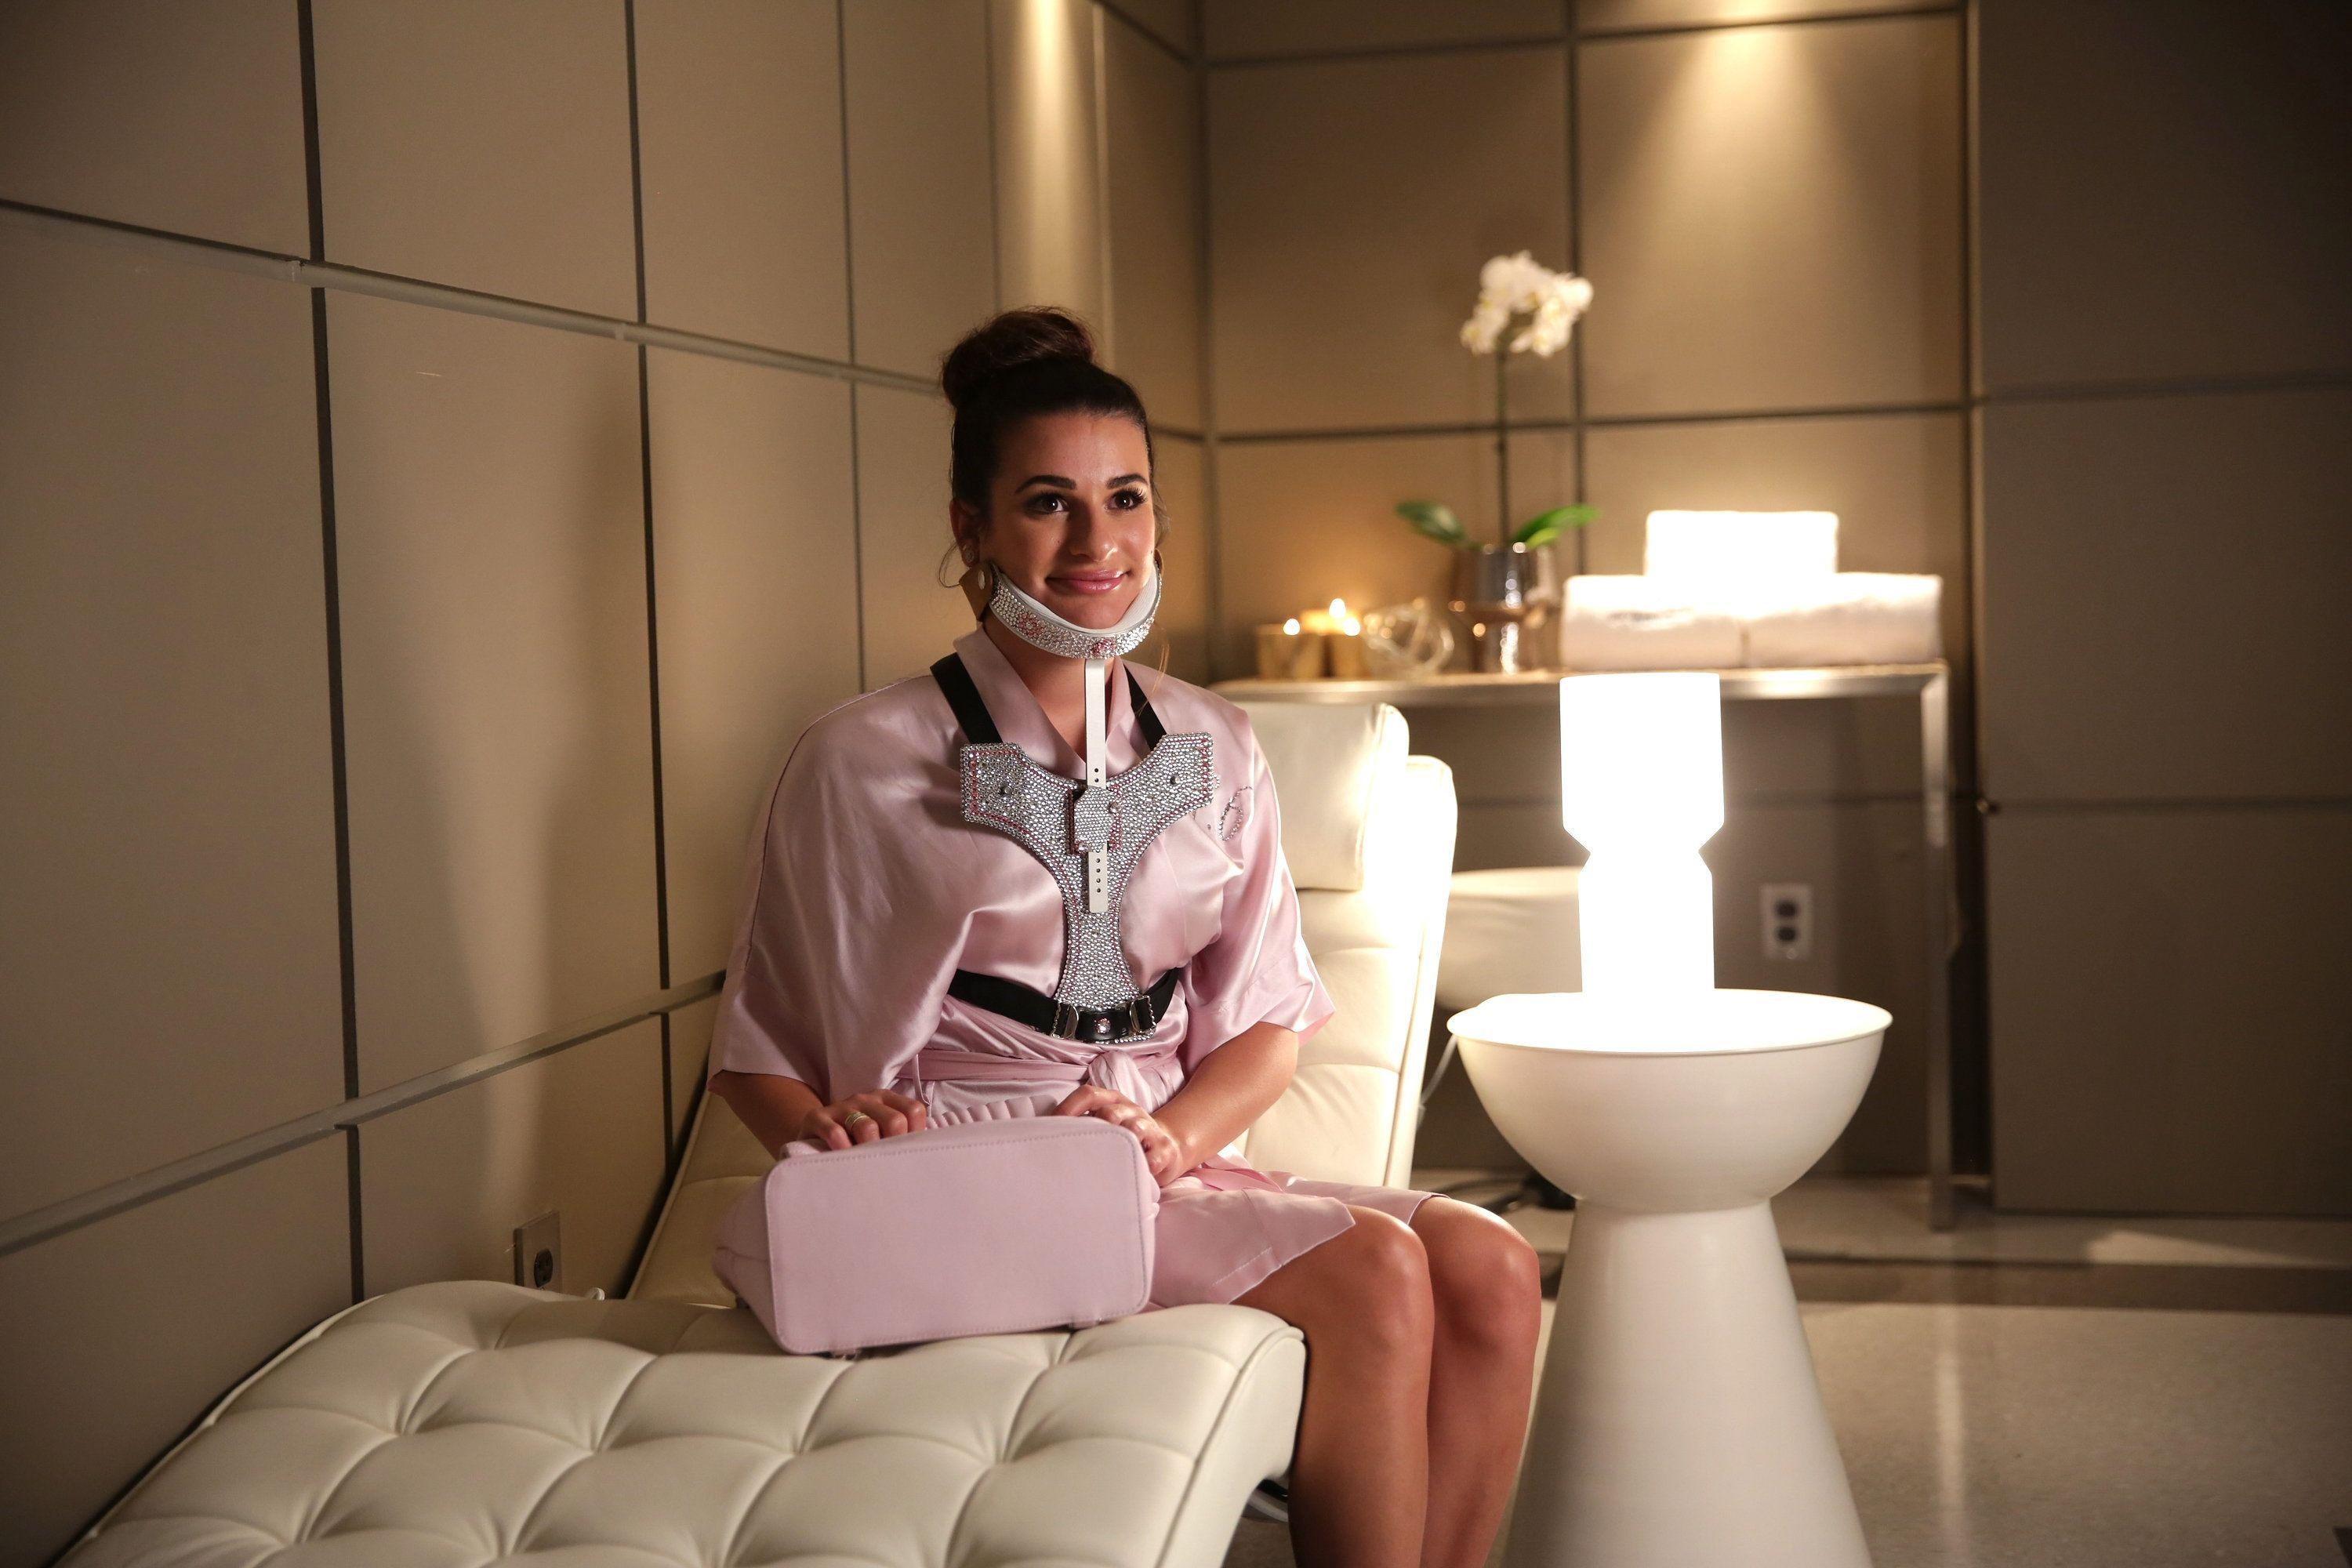 SCREAM QUEENS: Lea Michele in the 'Black Friday' episode of SCREAM QUEENS airing Tuesday, Dec. 1 (9:00-10:00 PM ET/PT) on FOX. (Photo by FOX via Getty Images)